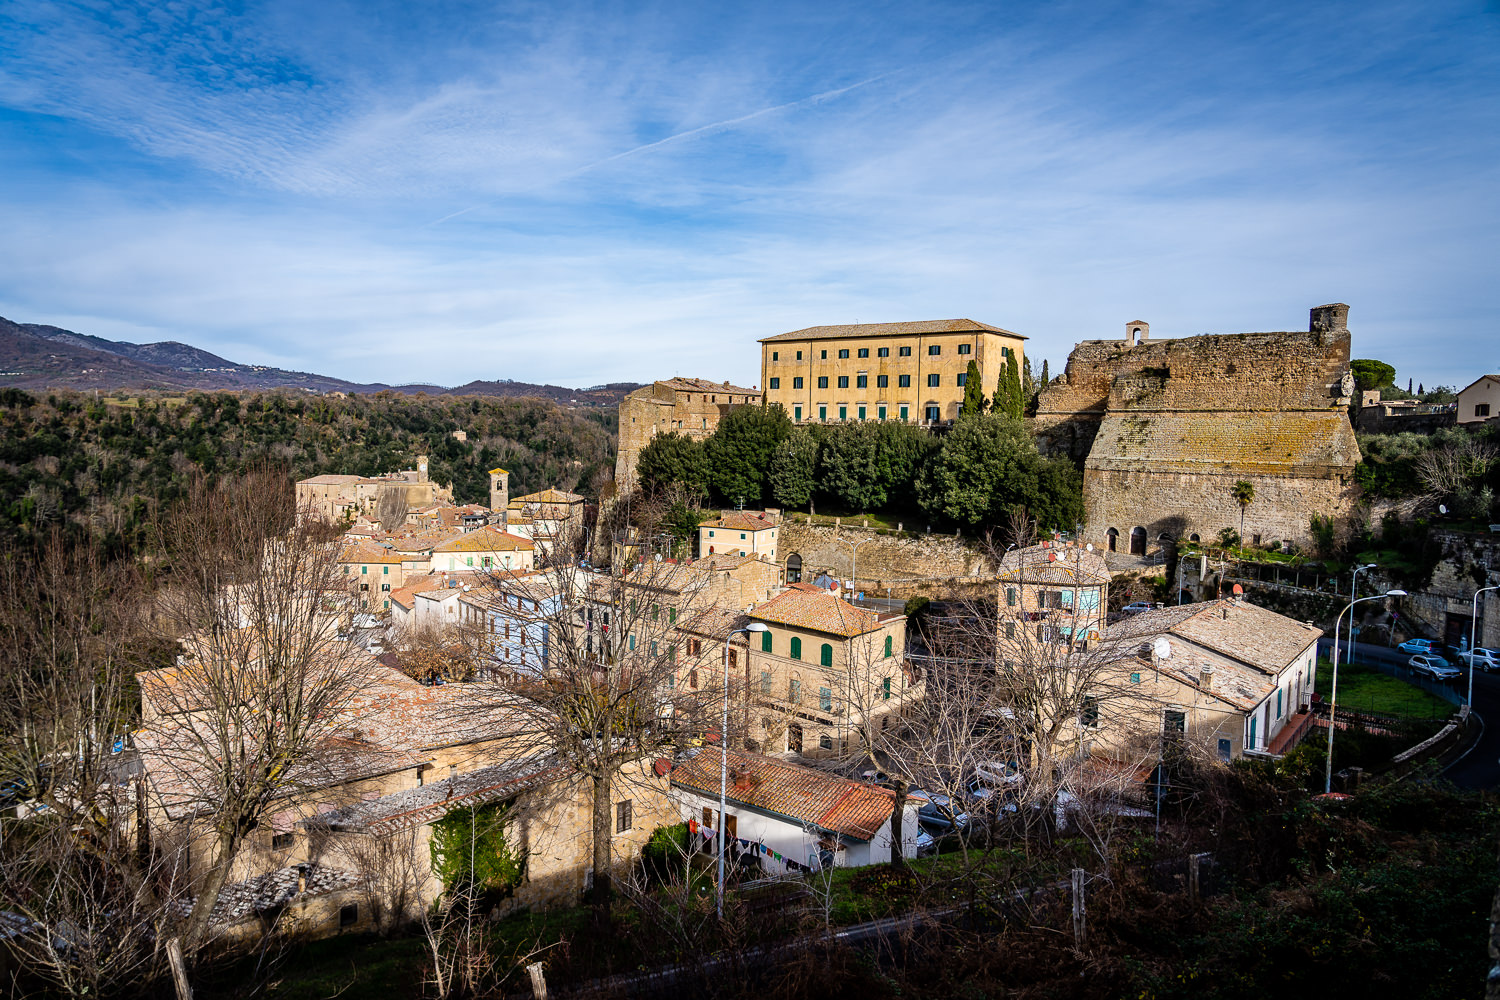 Town of Sorano, Italy as seen from Orsini Fortress